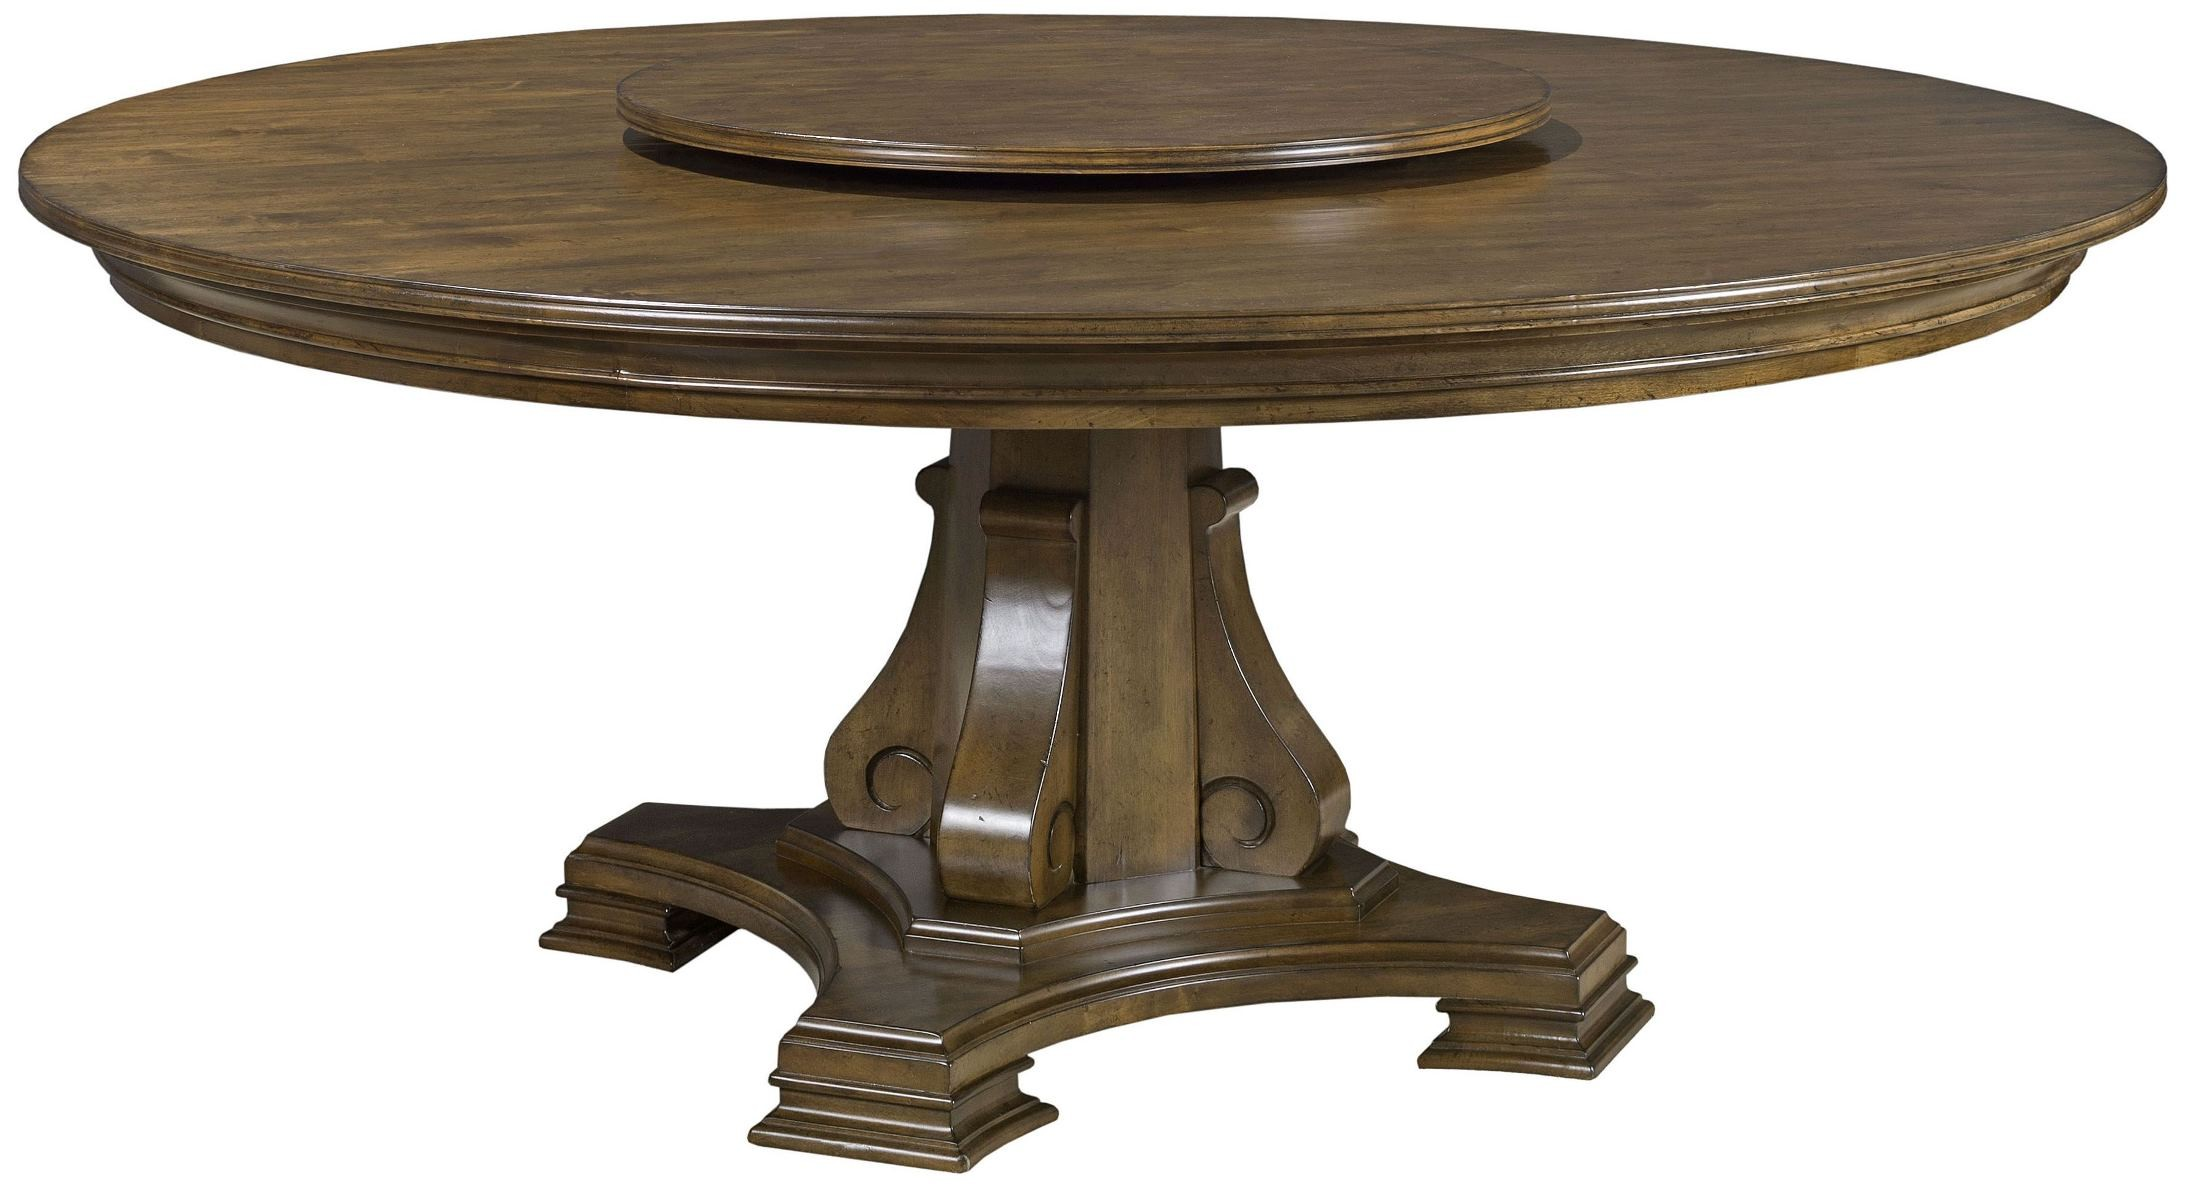 American Drew Cherry Grove Dining Room 72 Dining Table The Rhapsody 72 Inch Table Dining Room